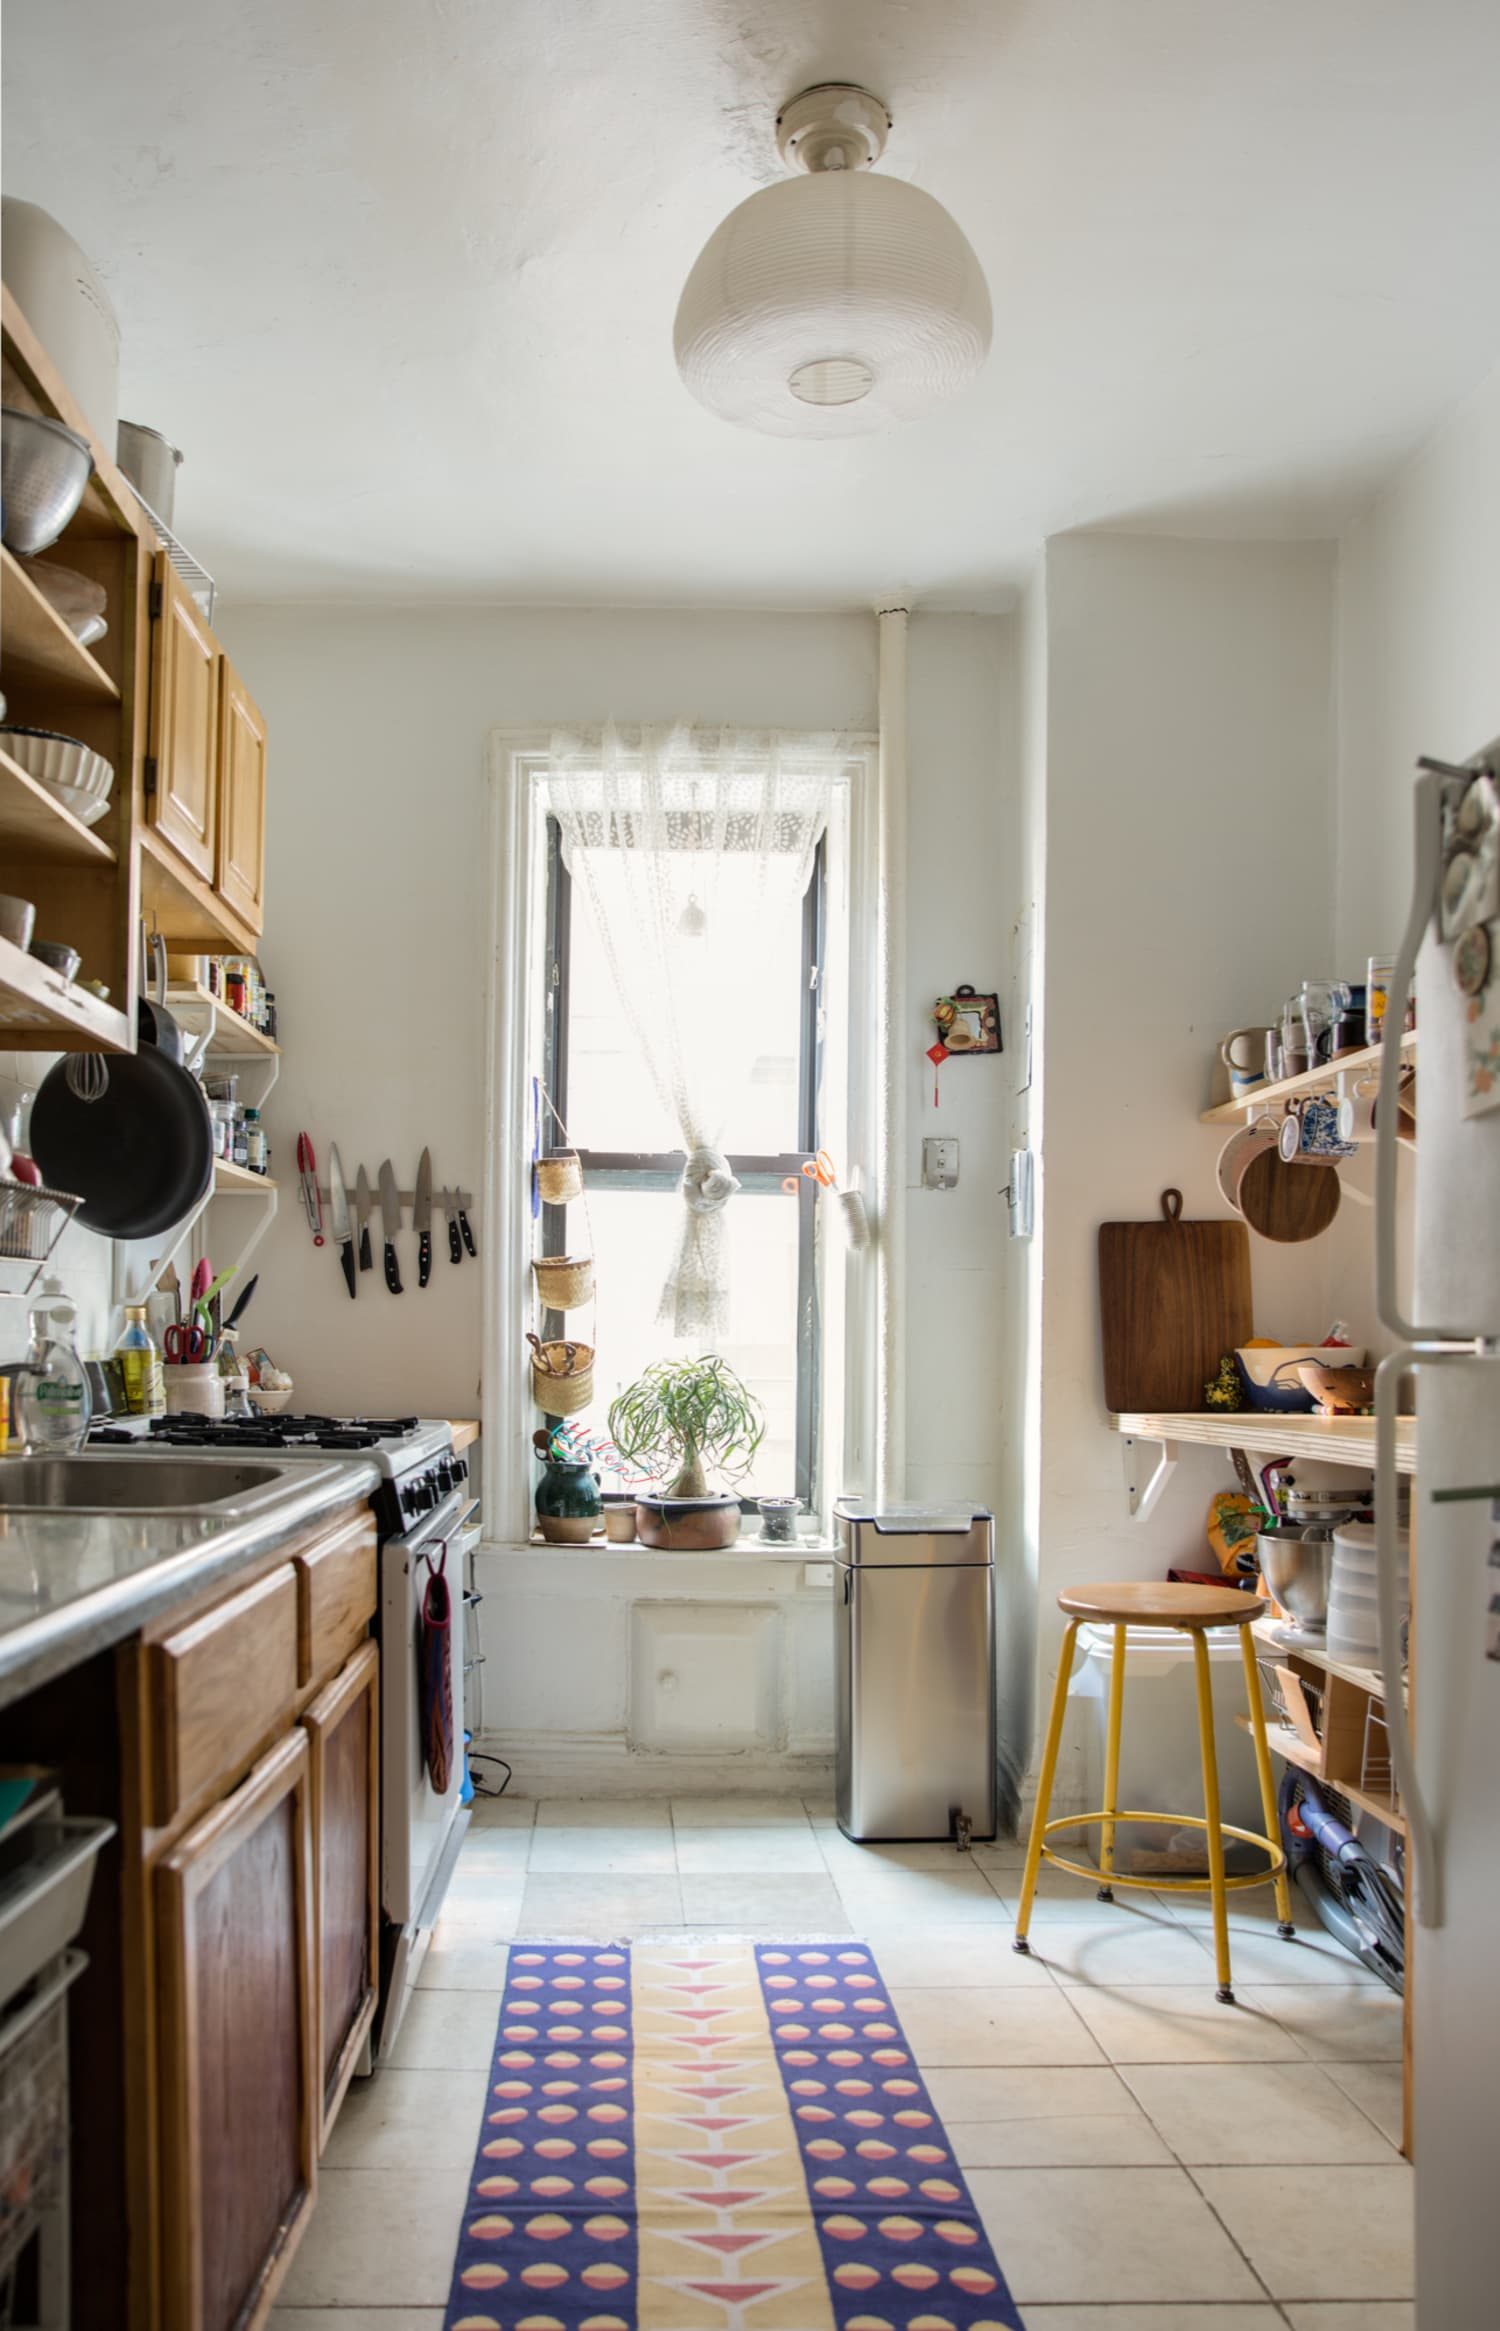 4 Garbage Can Tricks Everyone Should Try for a Better-Smelling Kitchen | Apartment Therapy